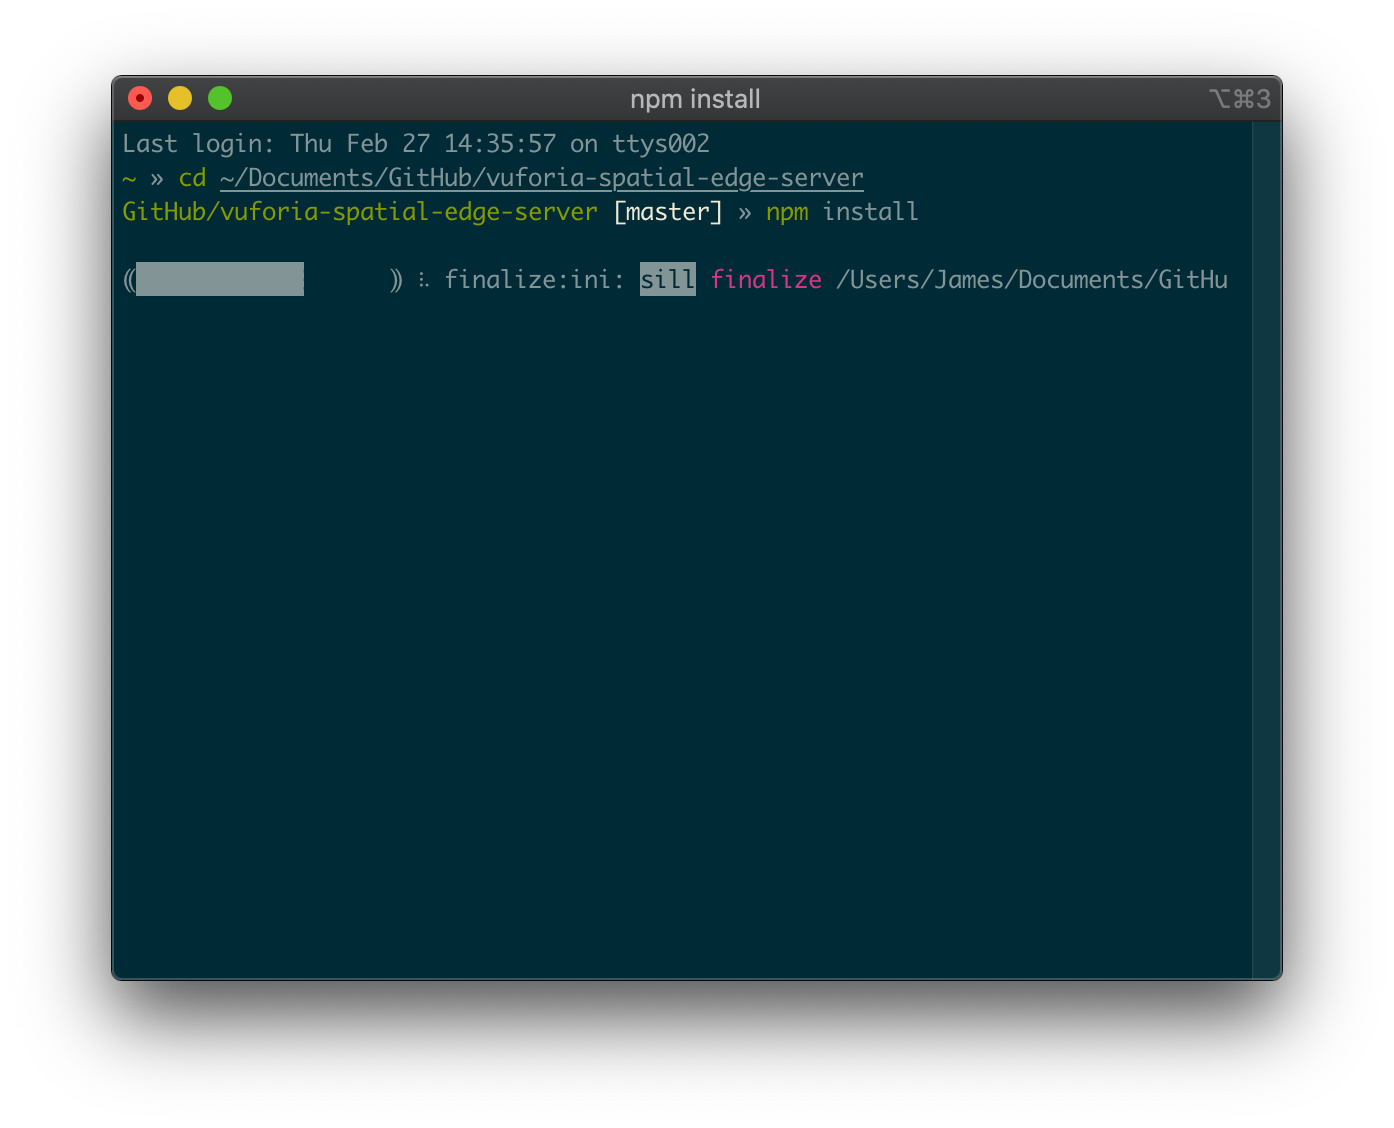 Terminal containing npm install in the edge server directory